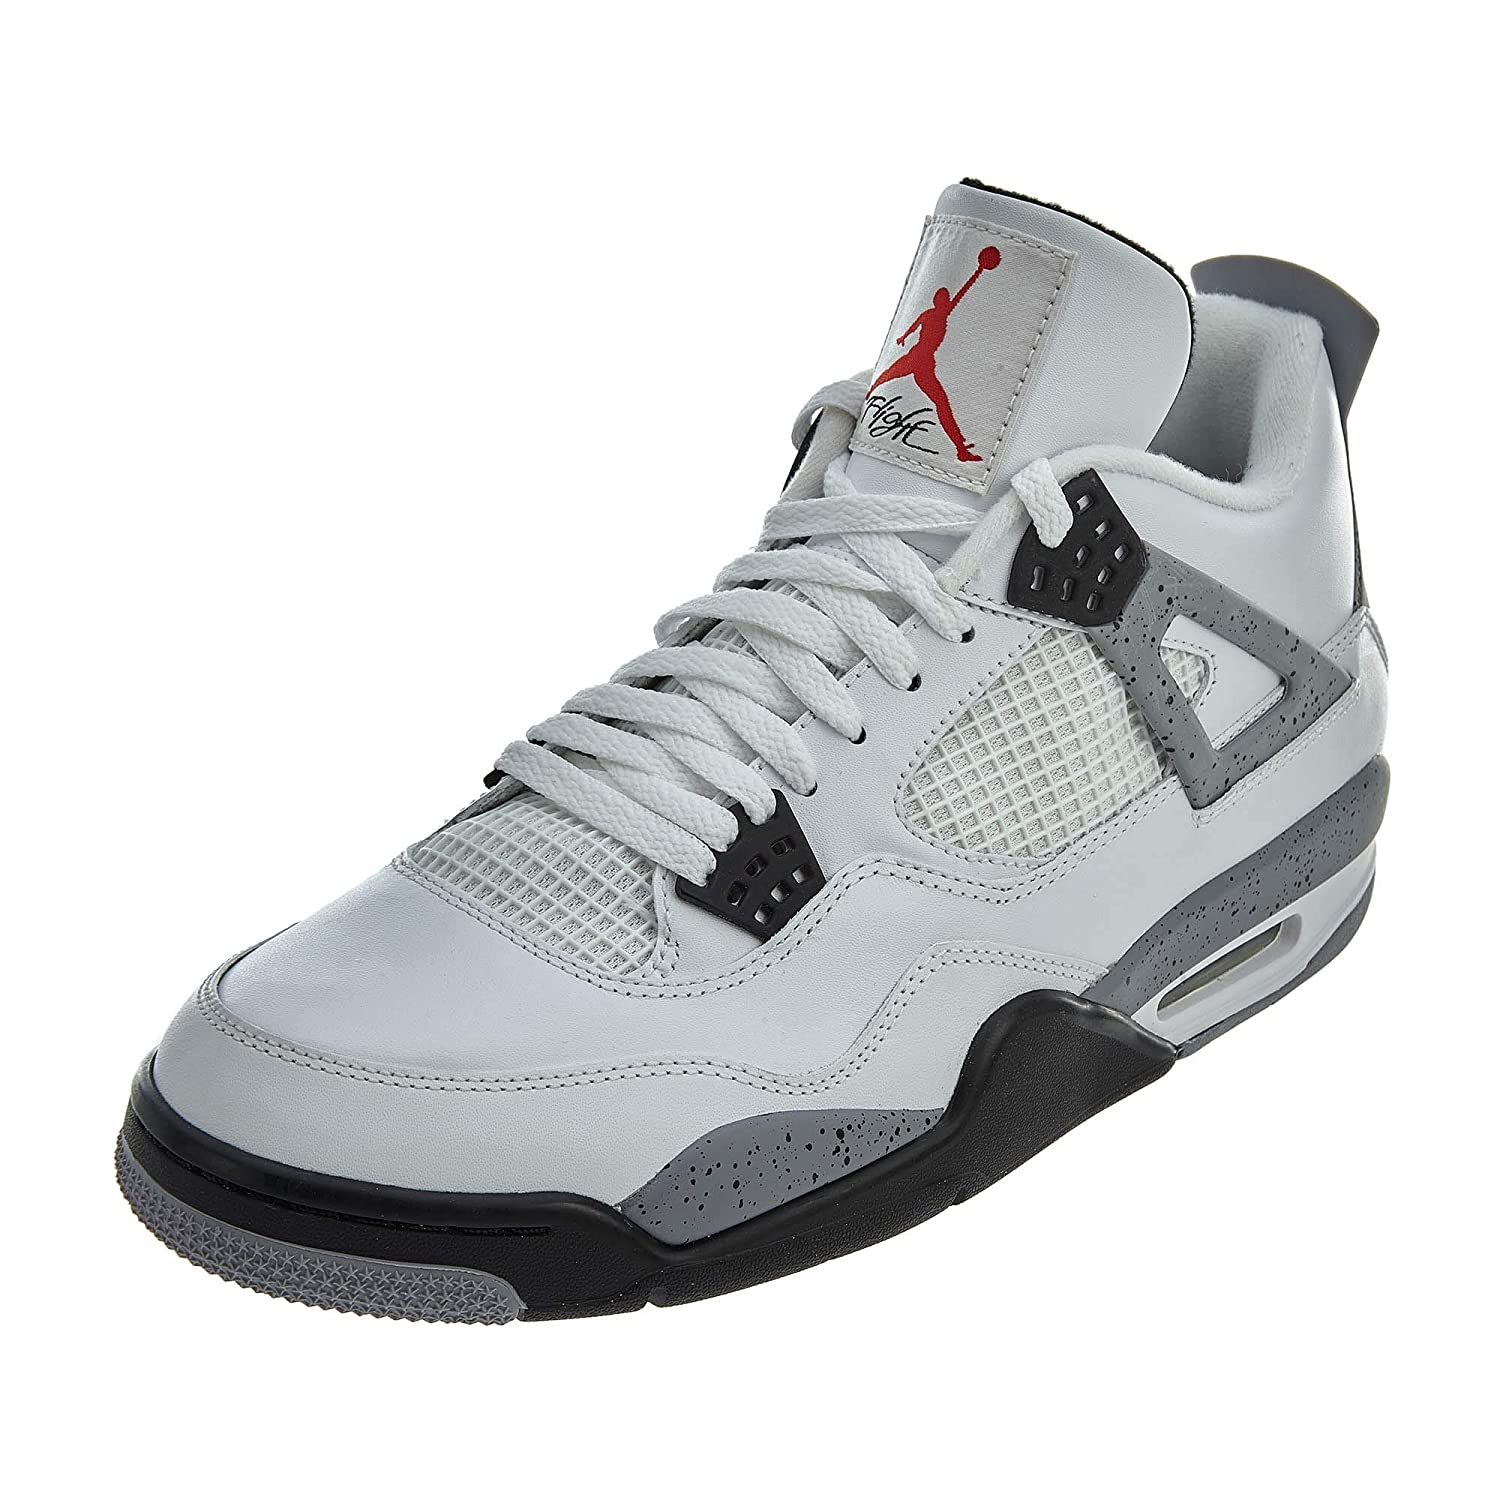 promo code 73437 acdb1 Amazon.com   Nike Air Jordan Iv Retro White Cement (308497-103) (Mens us9)    Basketball